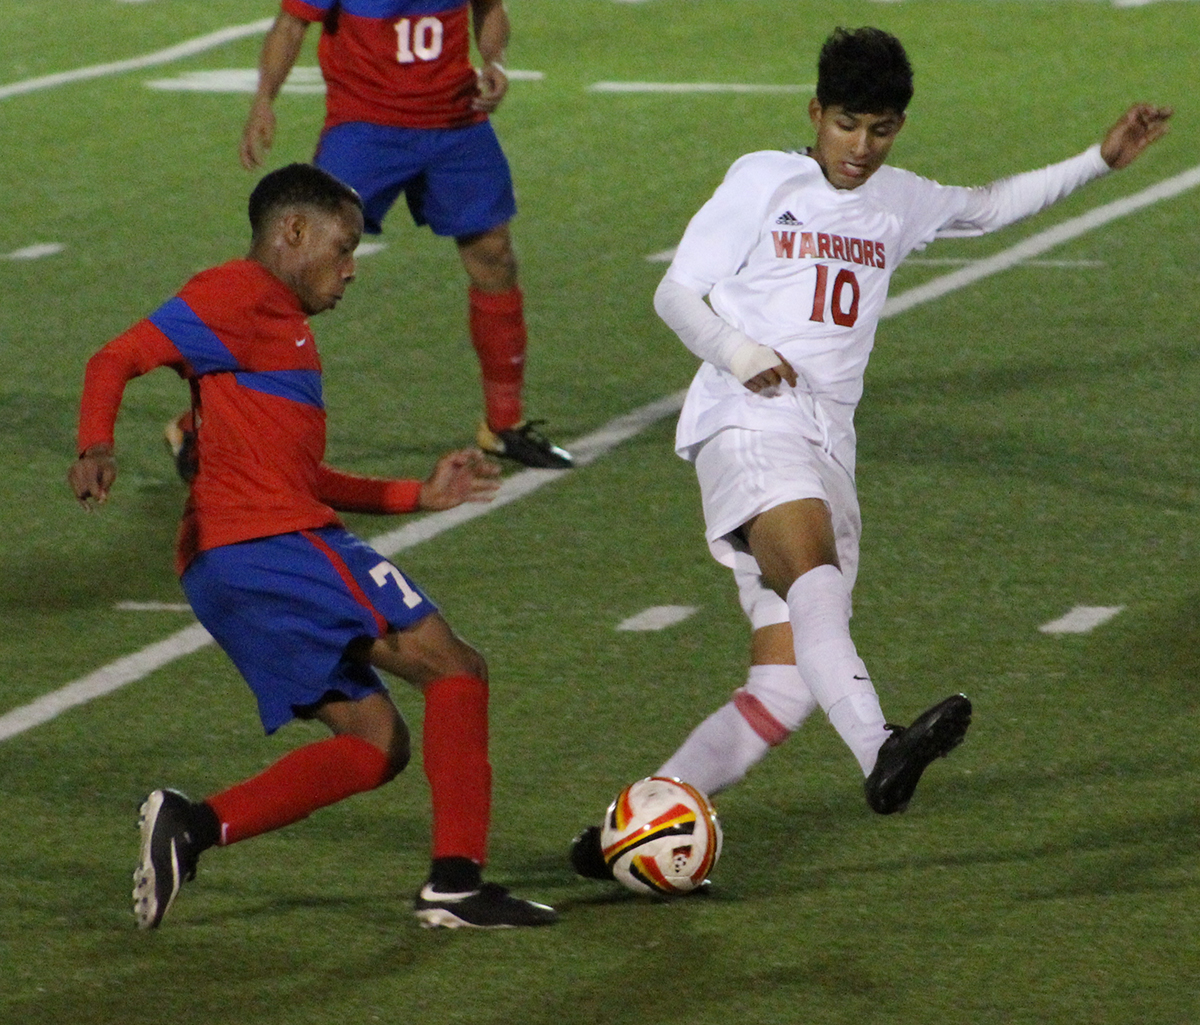 The varsity boys soccer fights for top spot in district with 1-1 tie with SGP. (Giselle Lopez photo)